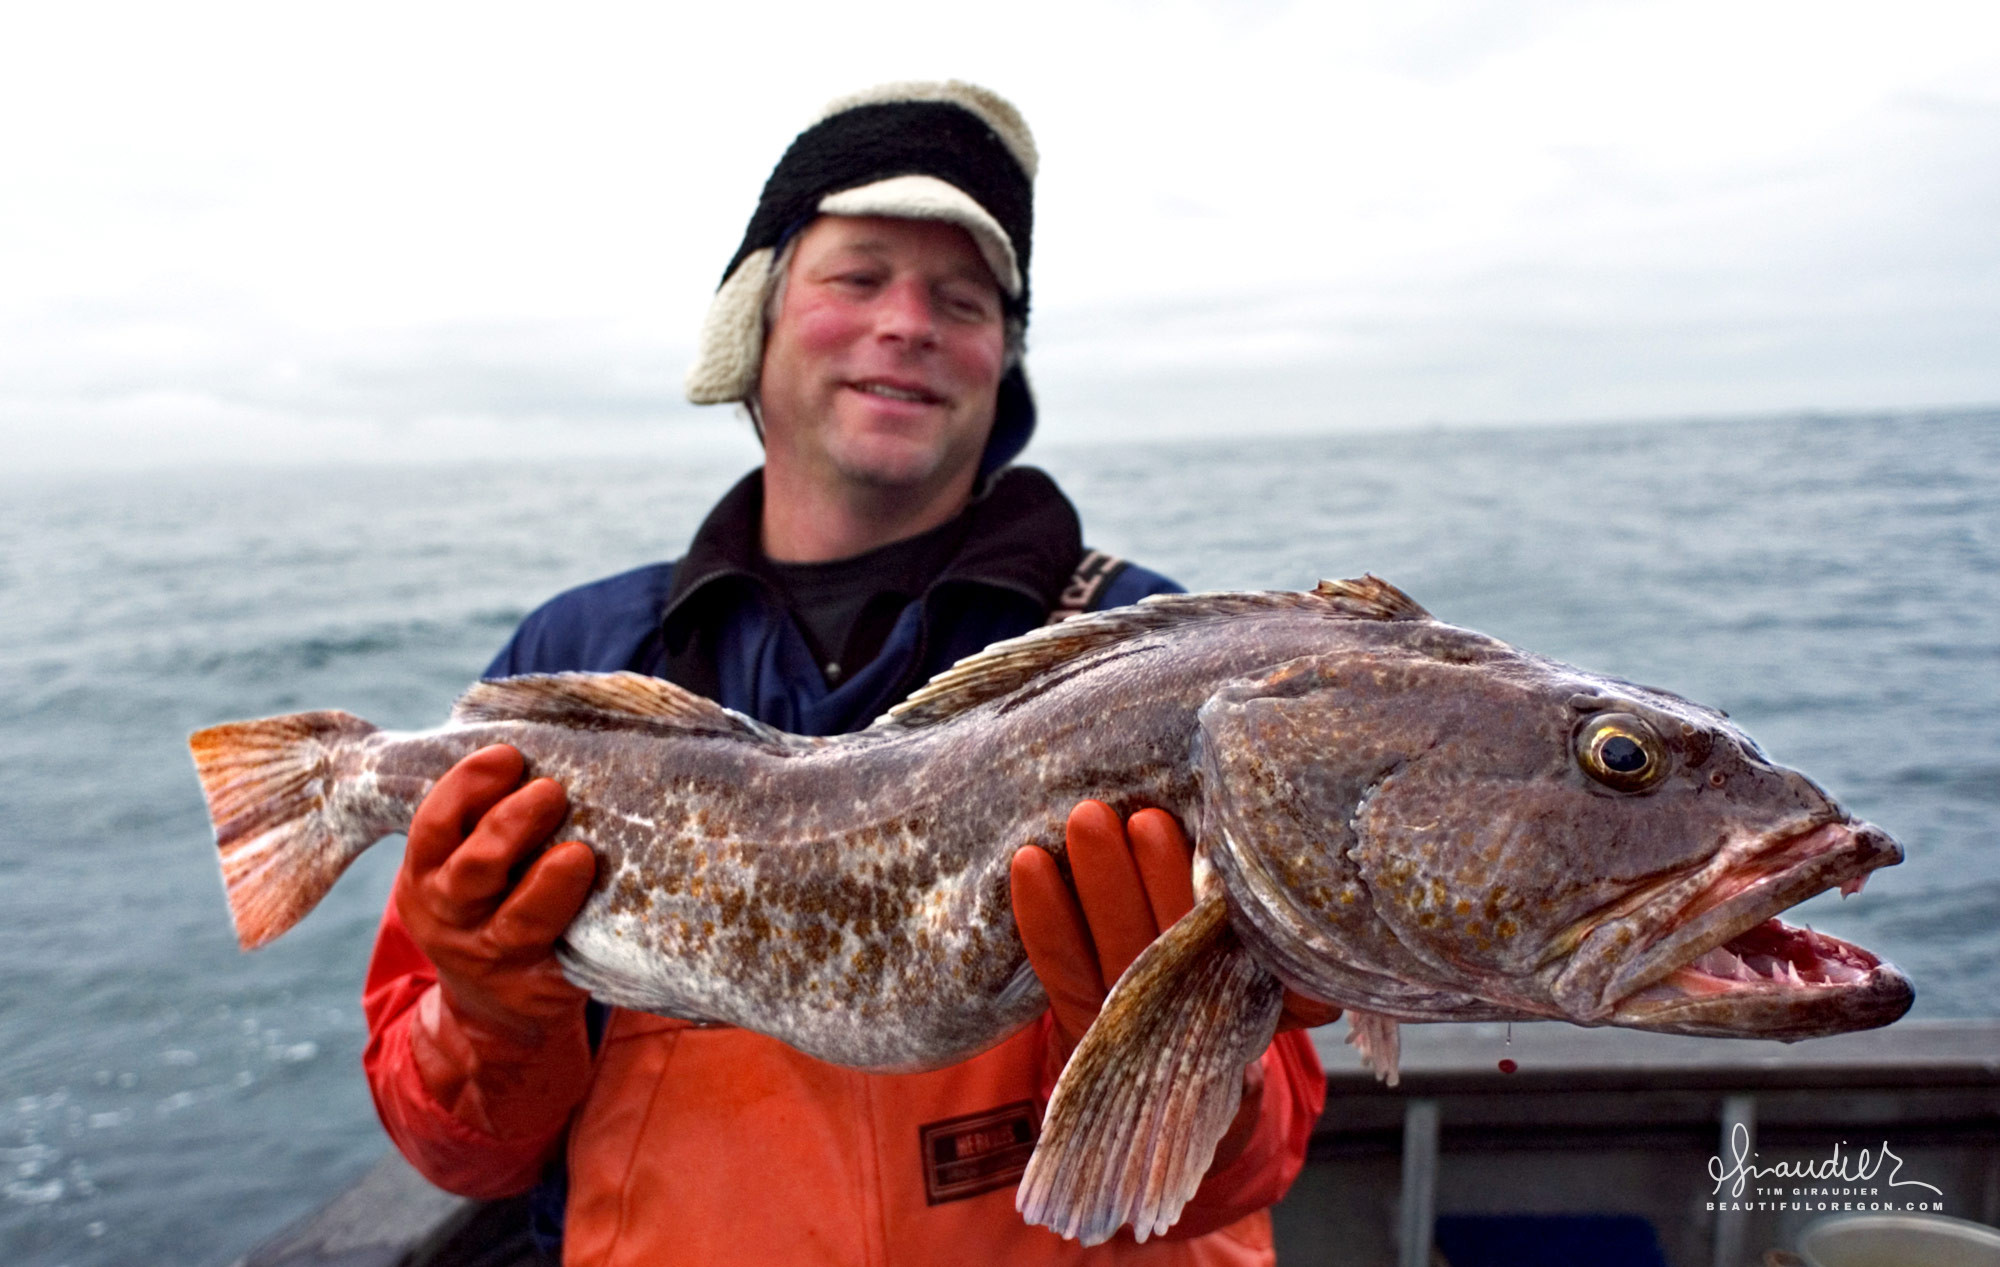 A medium sized Ling Cod (Ophiodon elongatus) picked up while troll fishing for King Salmon in the Gulf of Alaska.